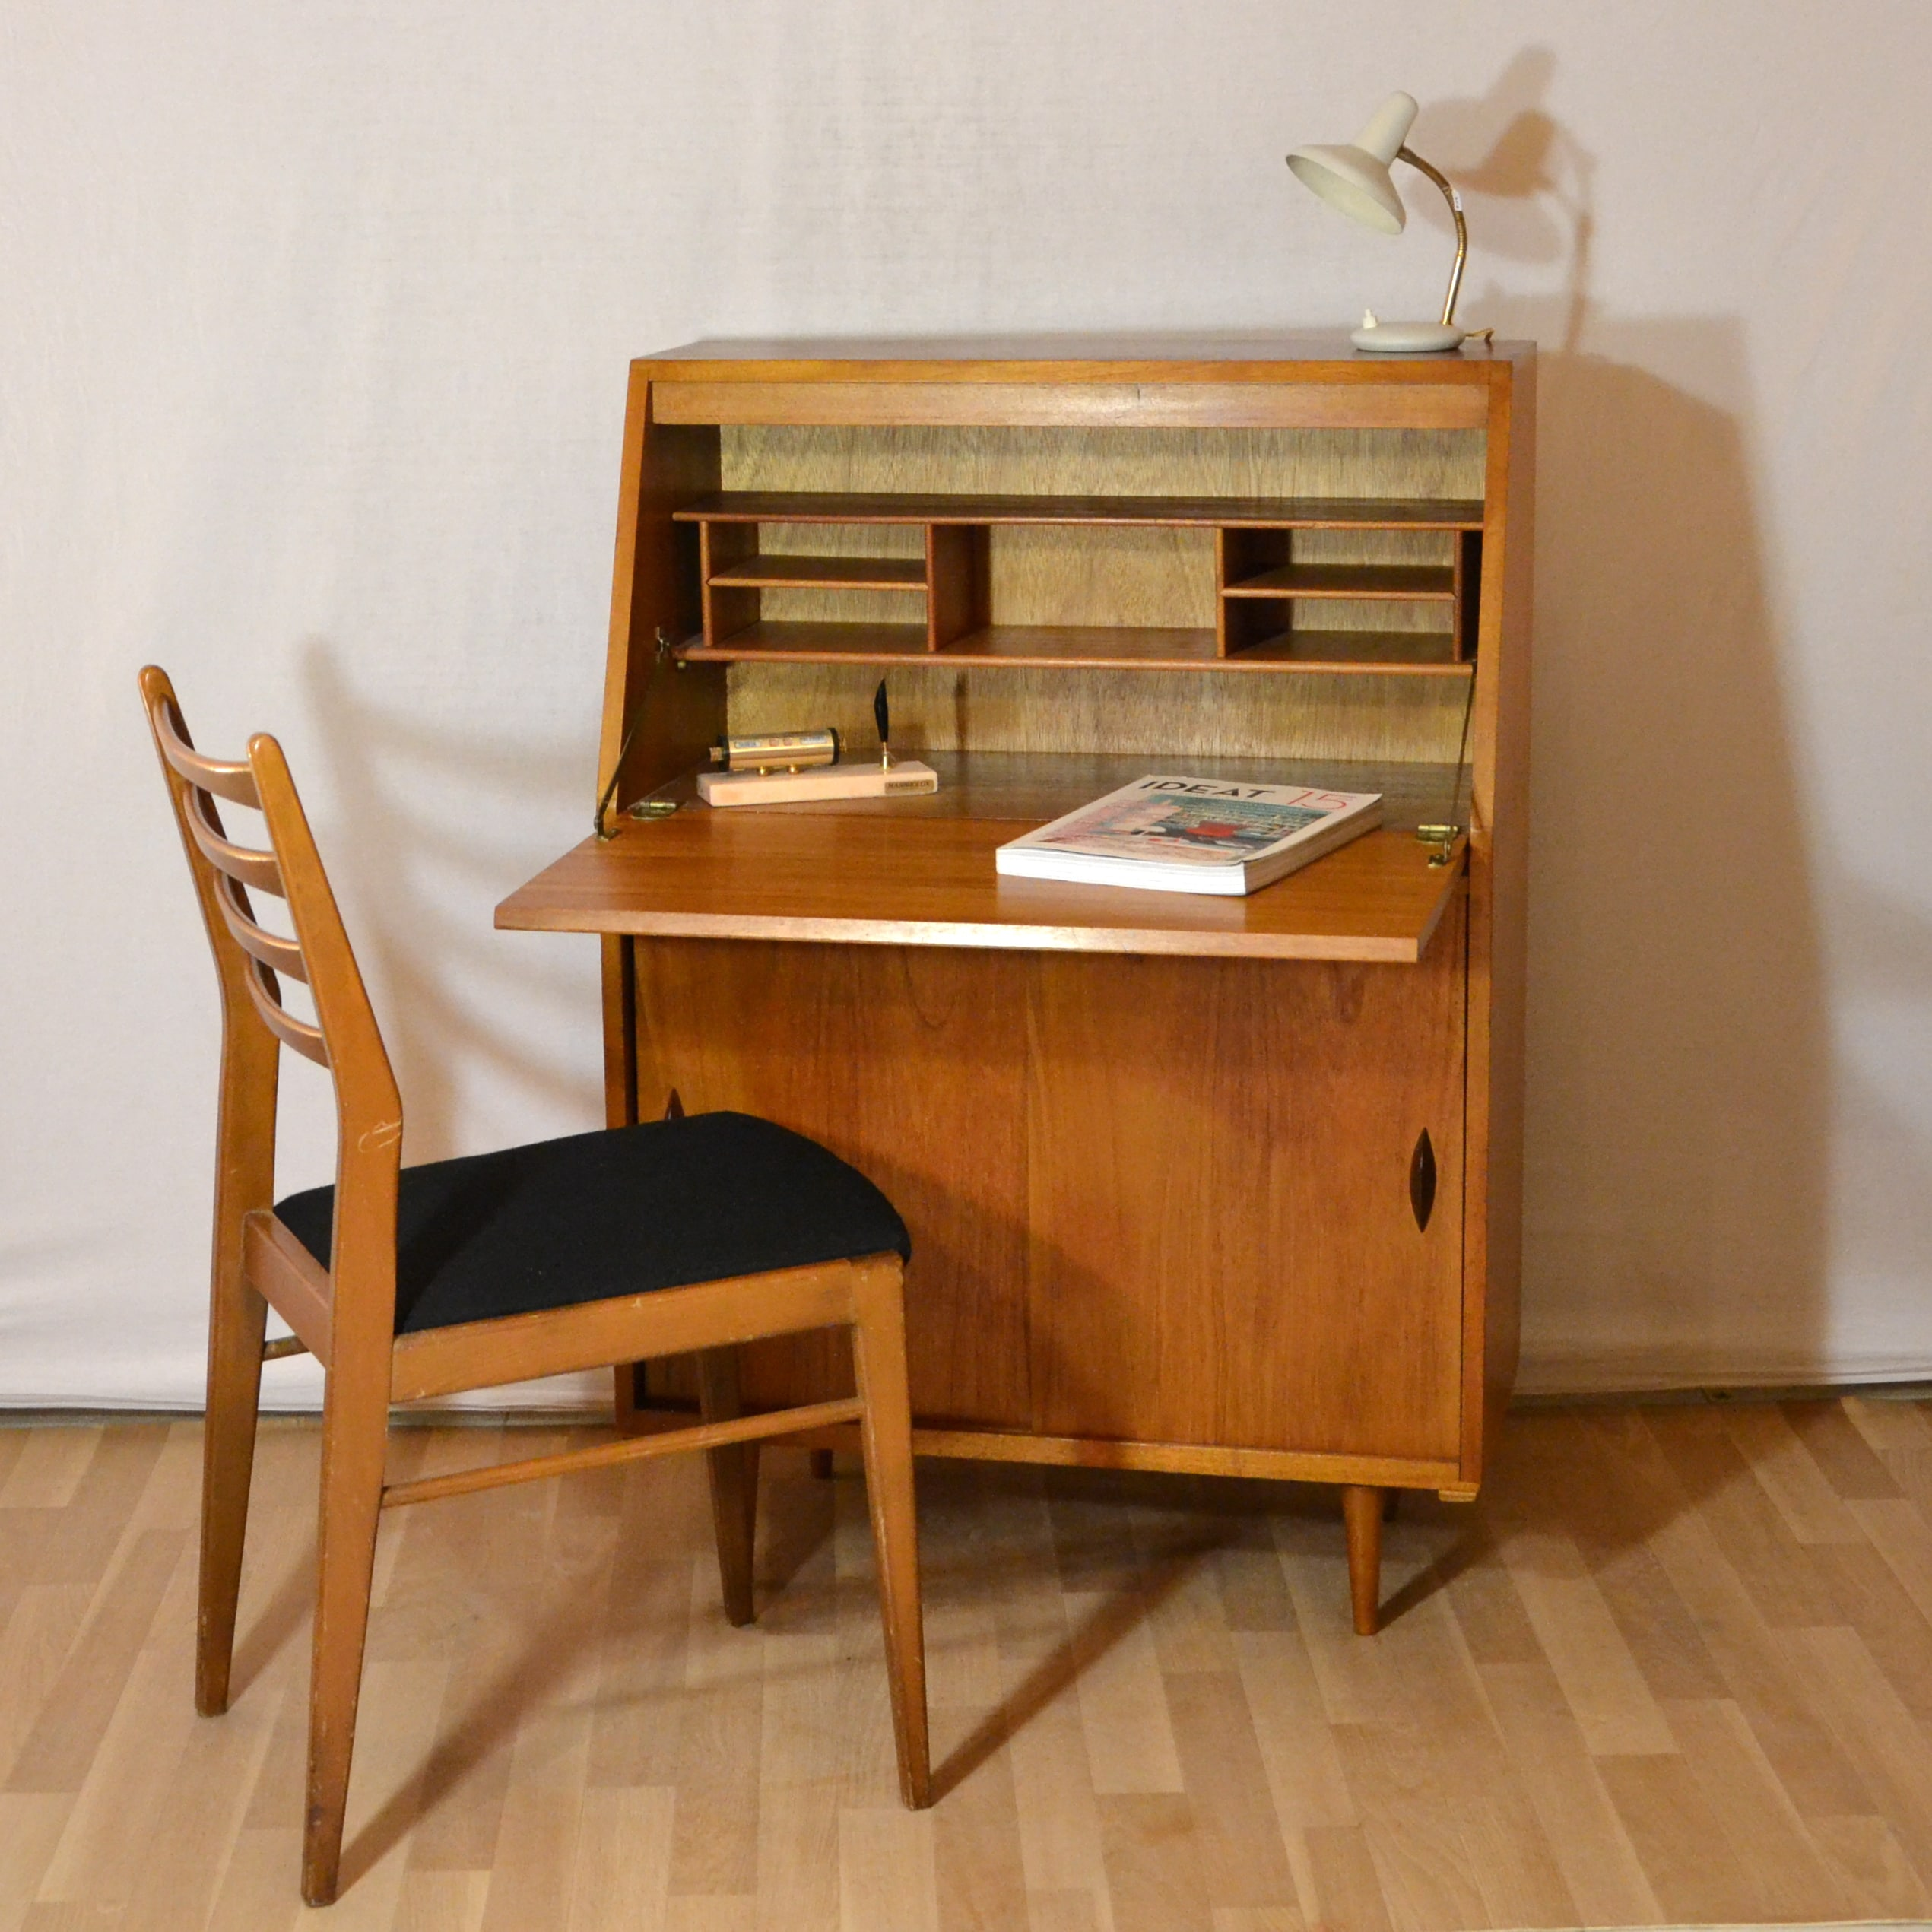 Petit secr taire scandinave bindies for Petit secretaire